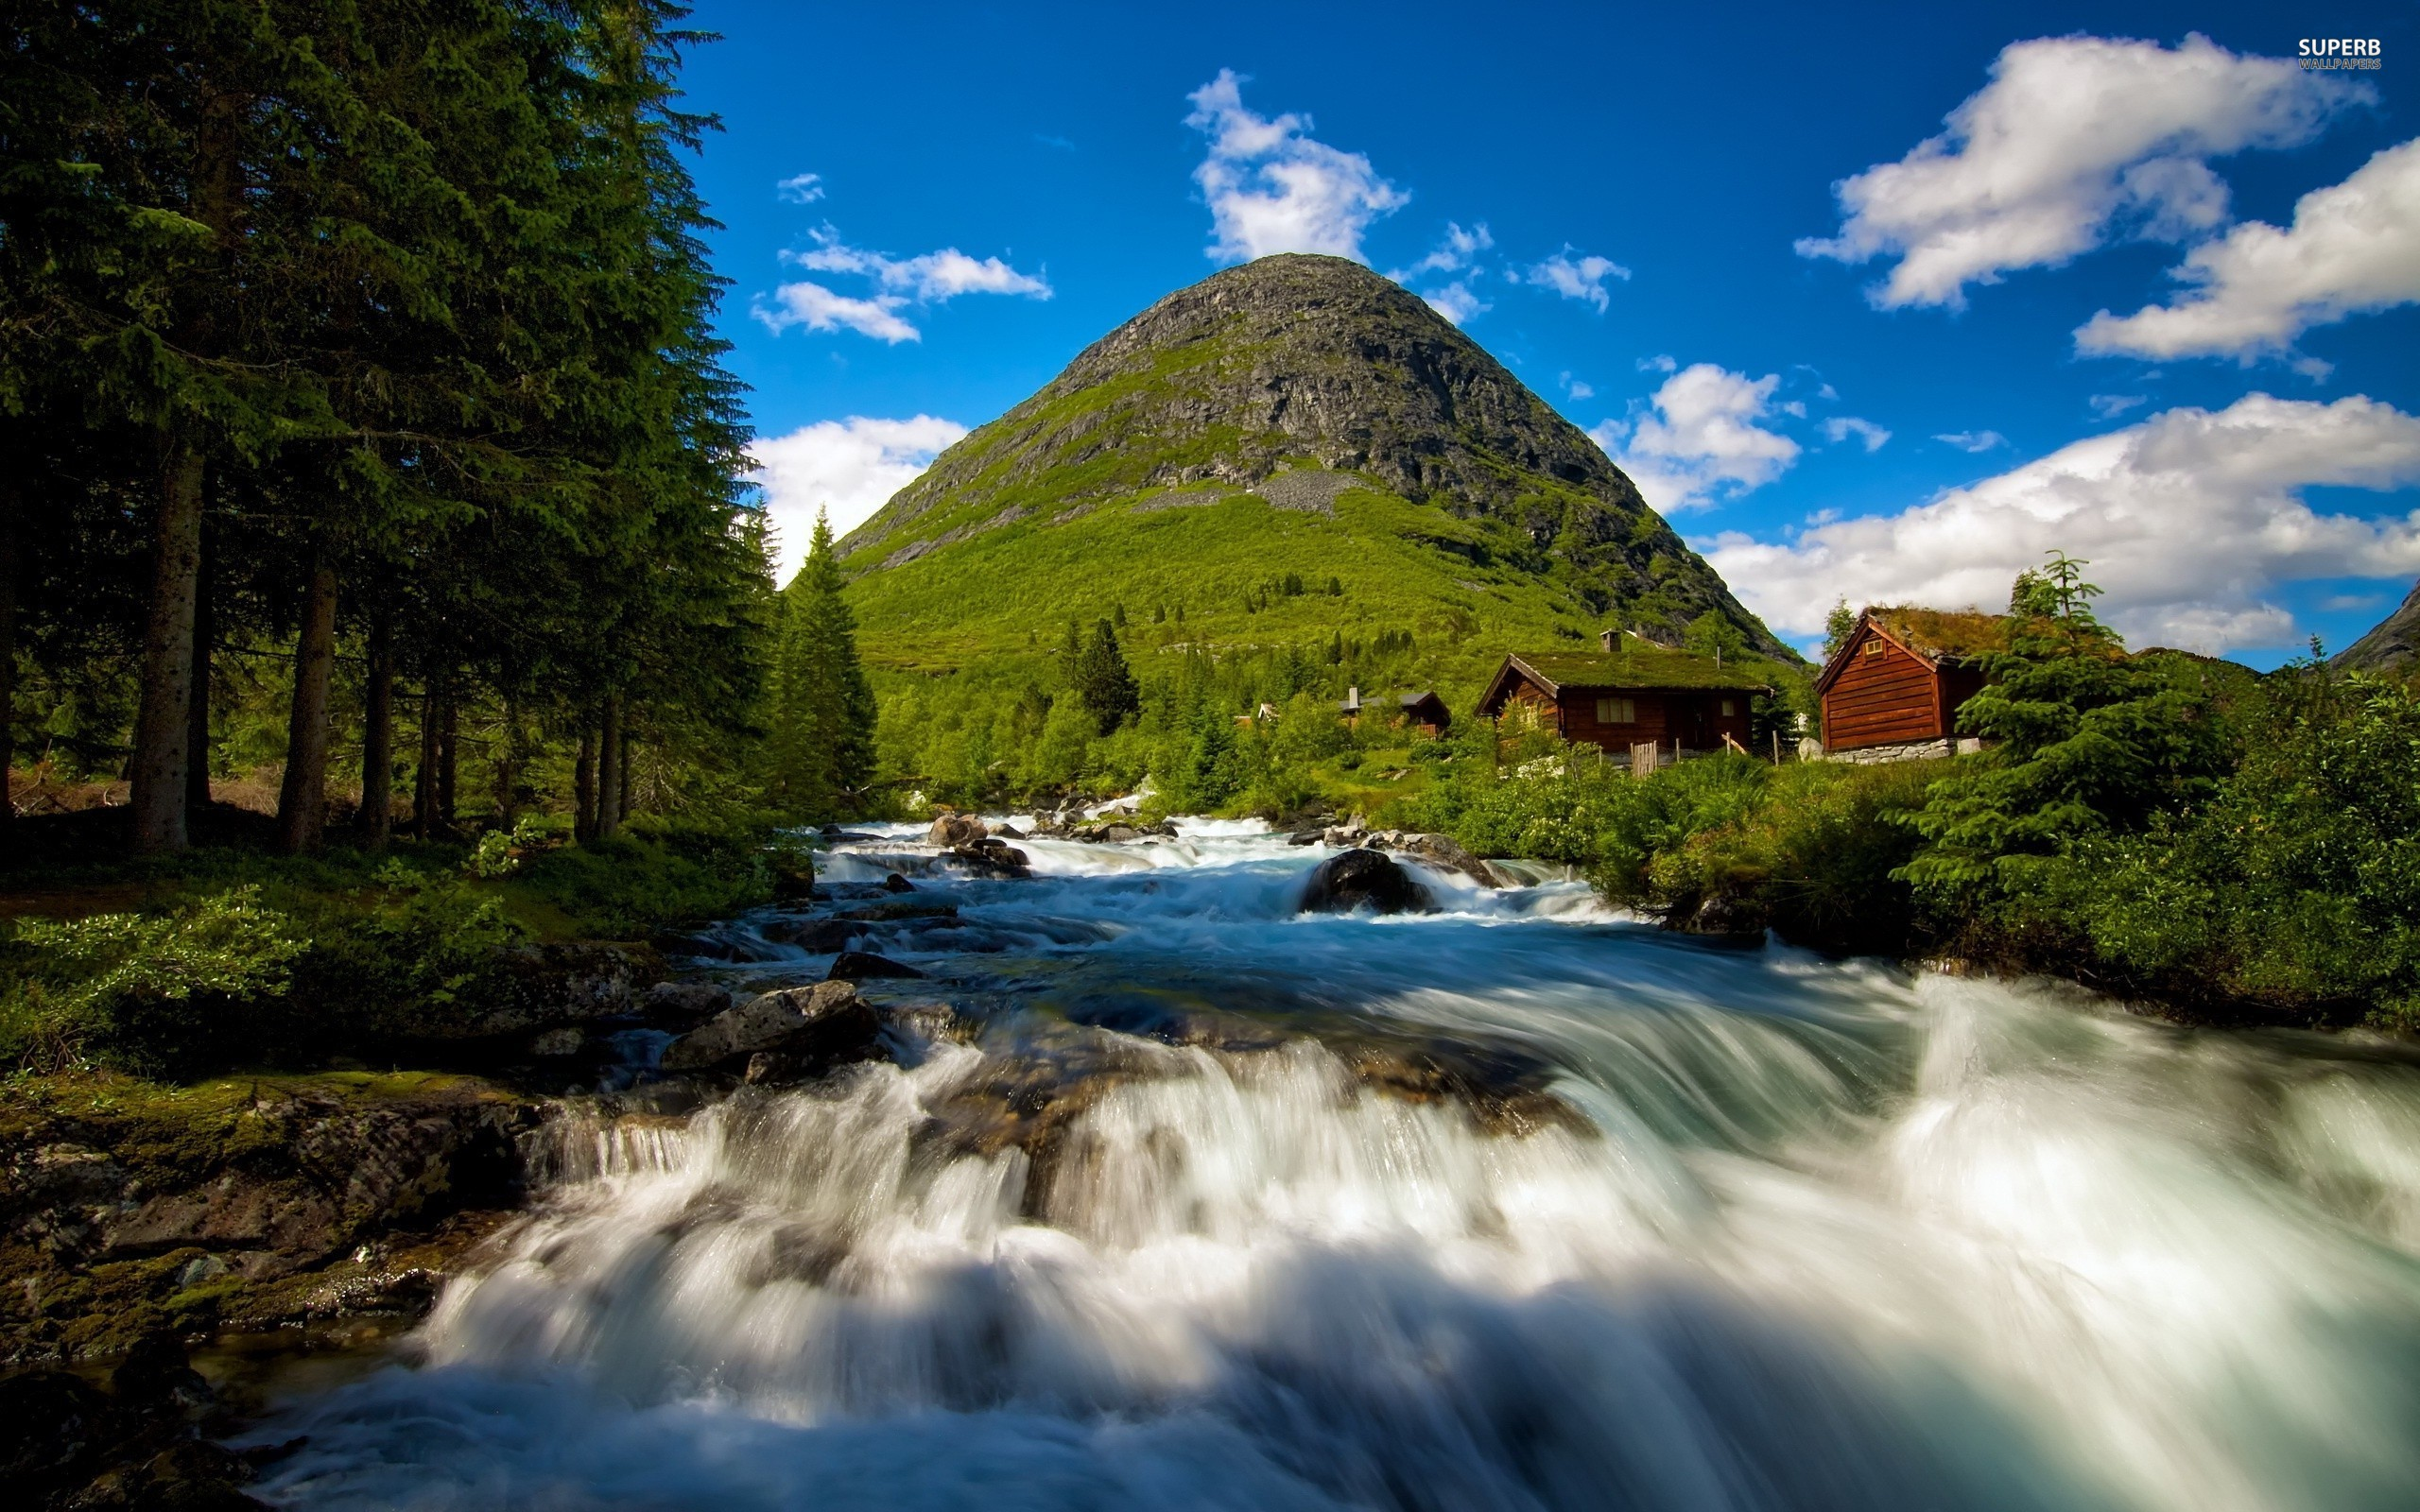 valldal-norway-22755-2560x1600